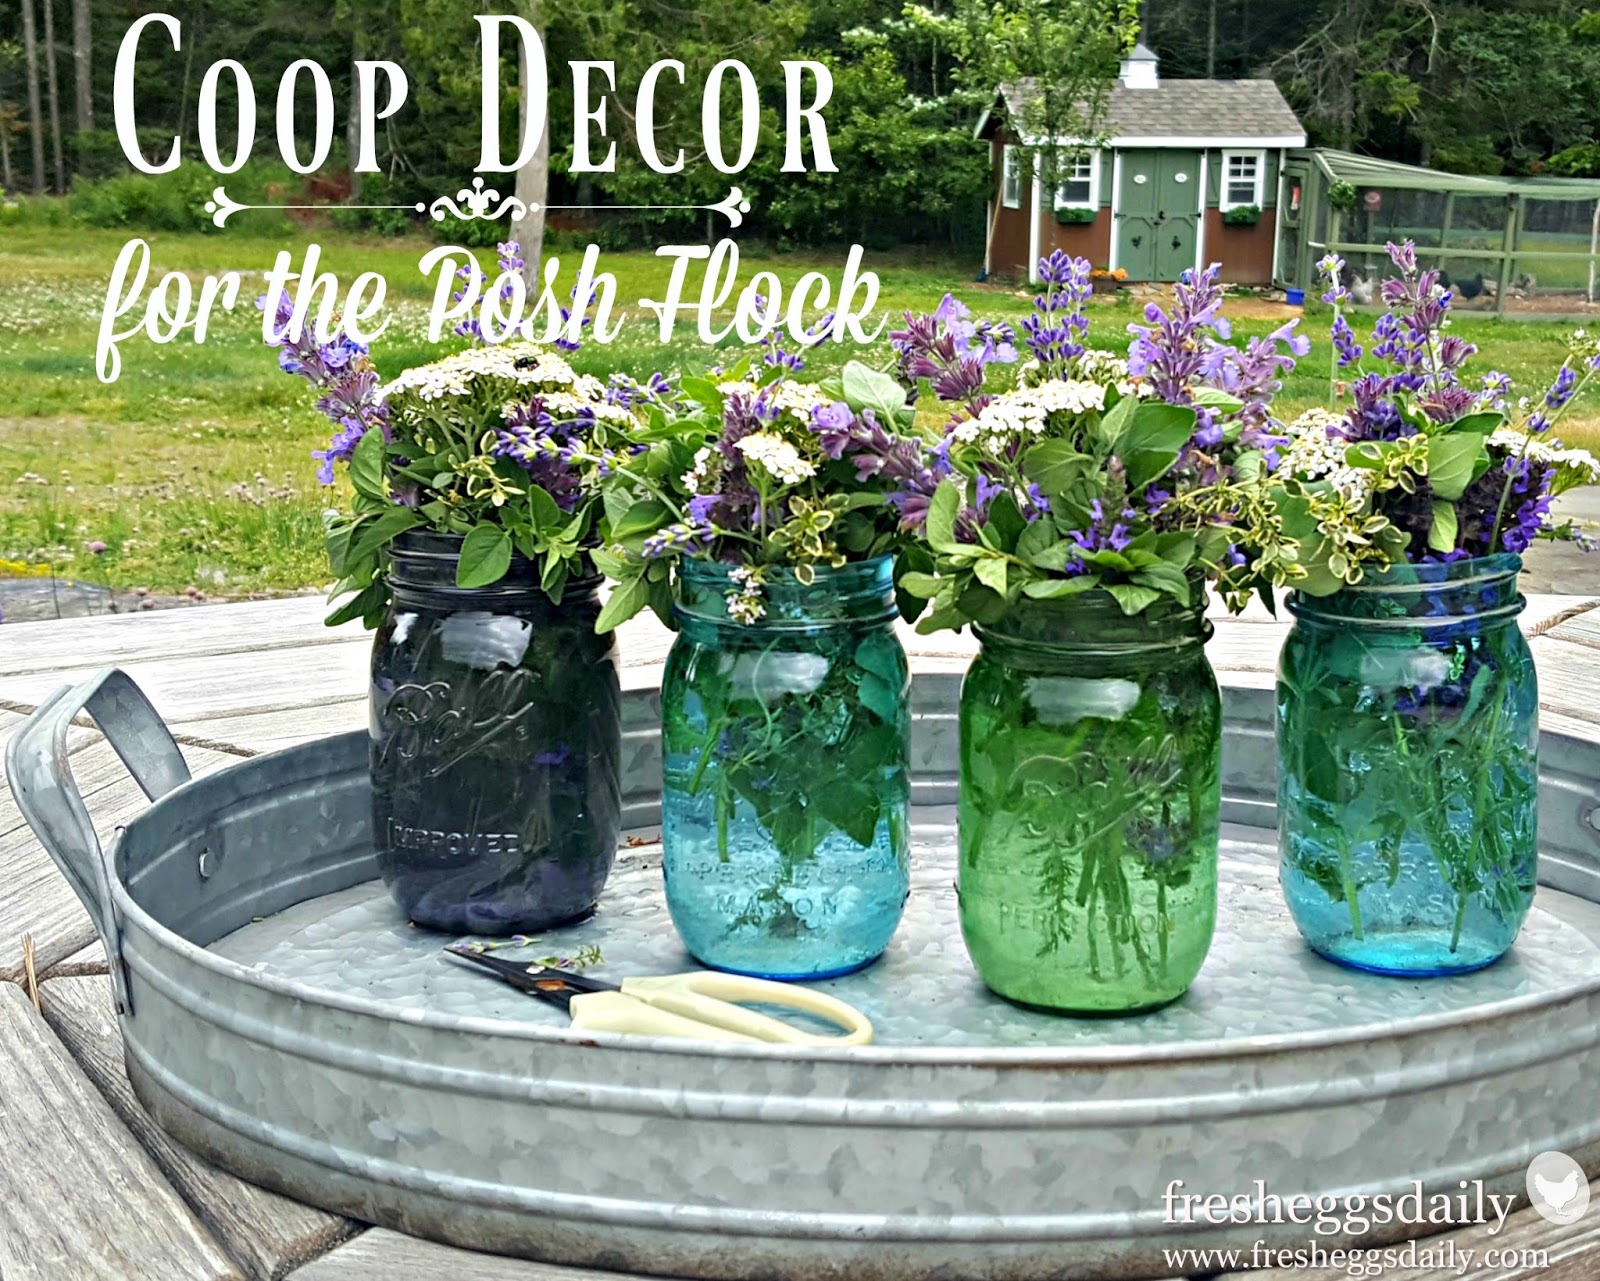 Chicken Coop Decor for the Posh Flock